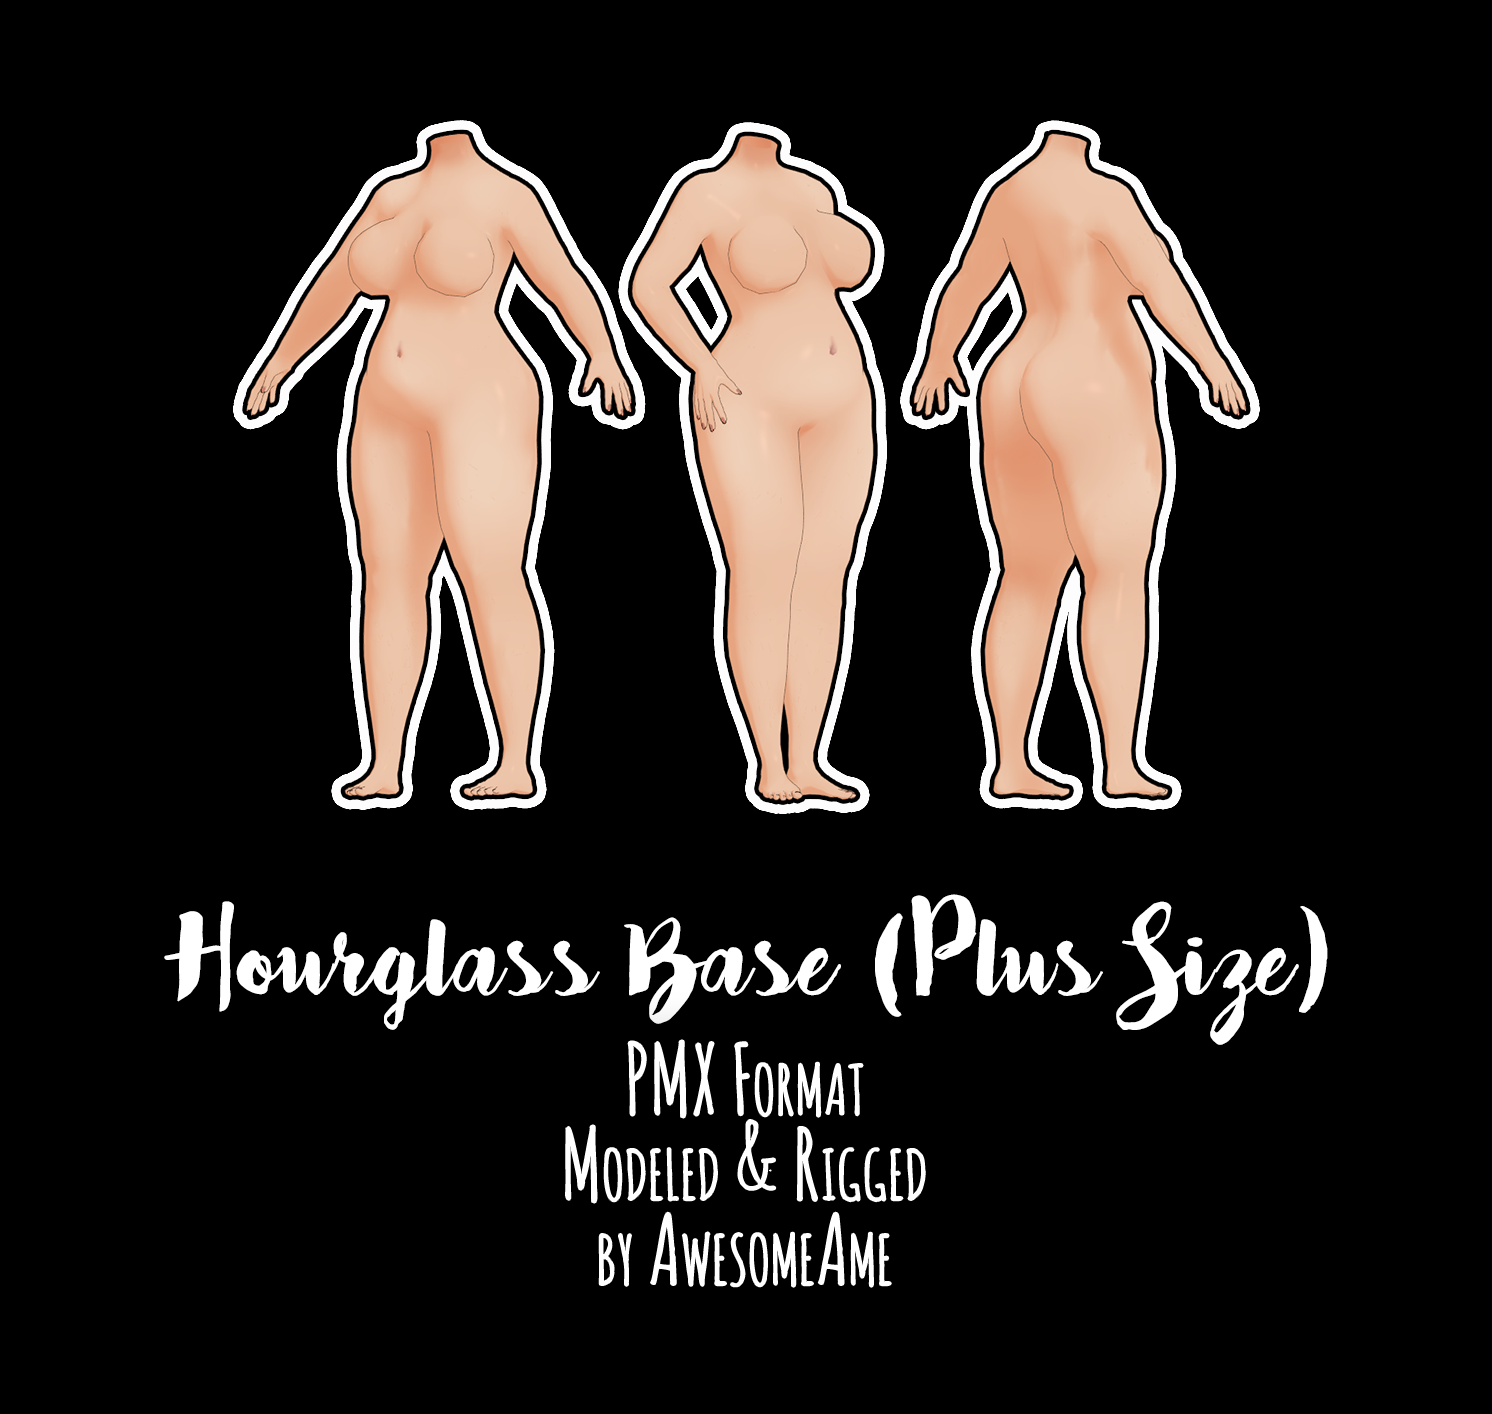 Mmd Hourglass Plus Size Download Moved Update By Awesomeame On Deviantart